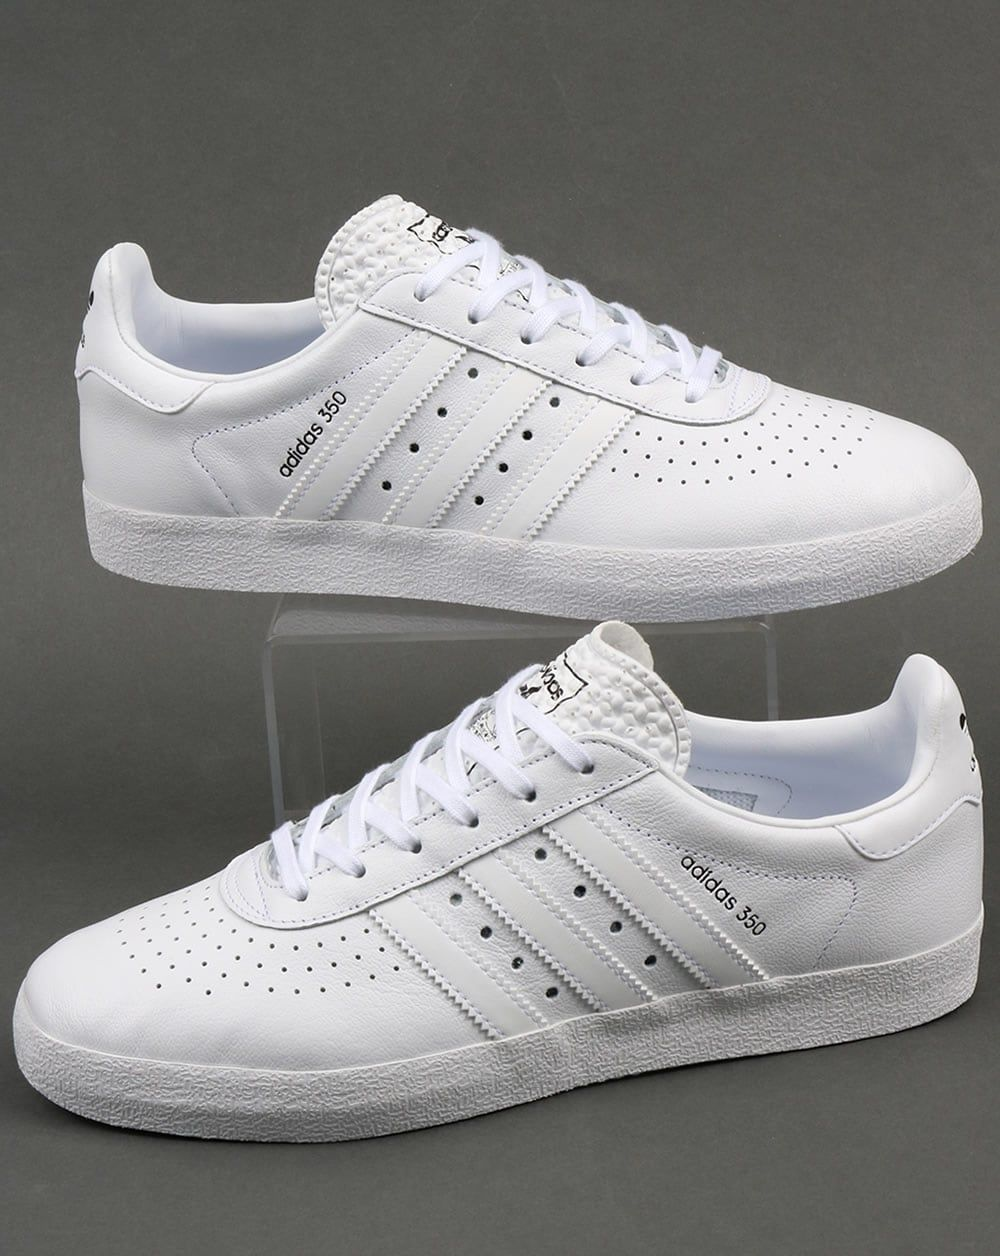 Adidas WhiteShoes 350 Sneakers Trainers Fashion 8OkwPnX0